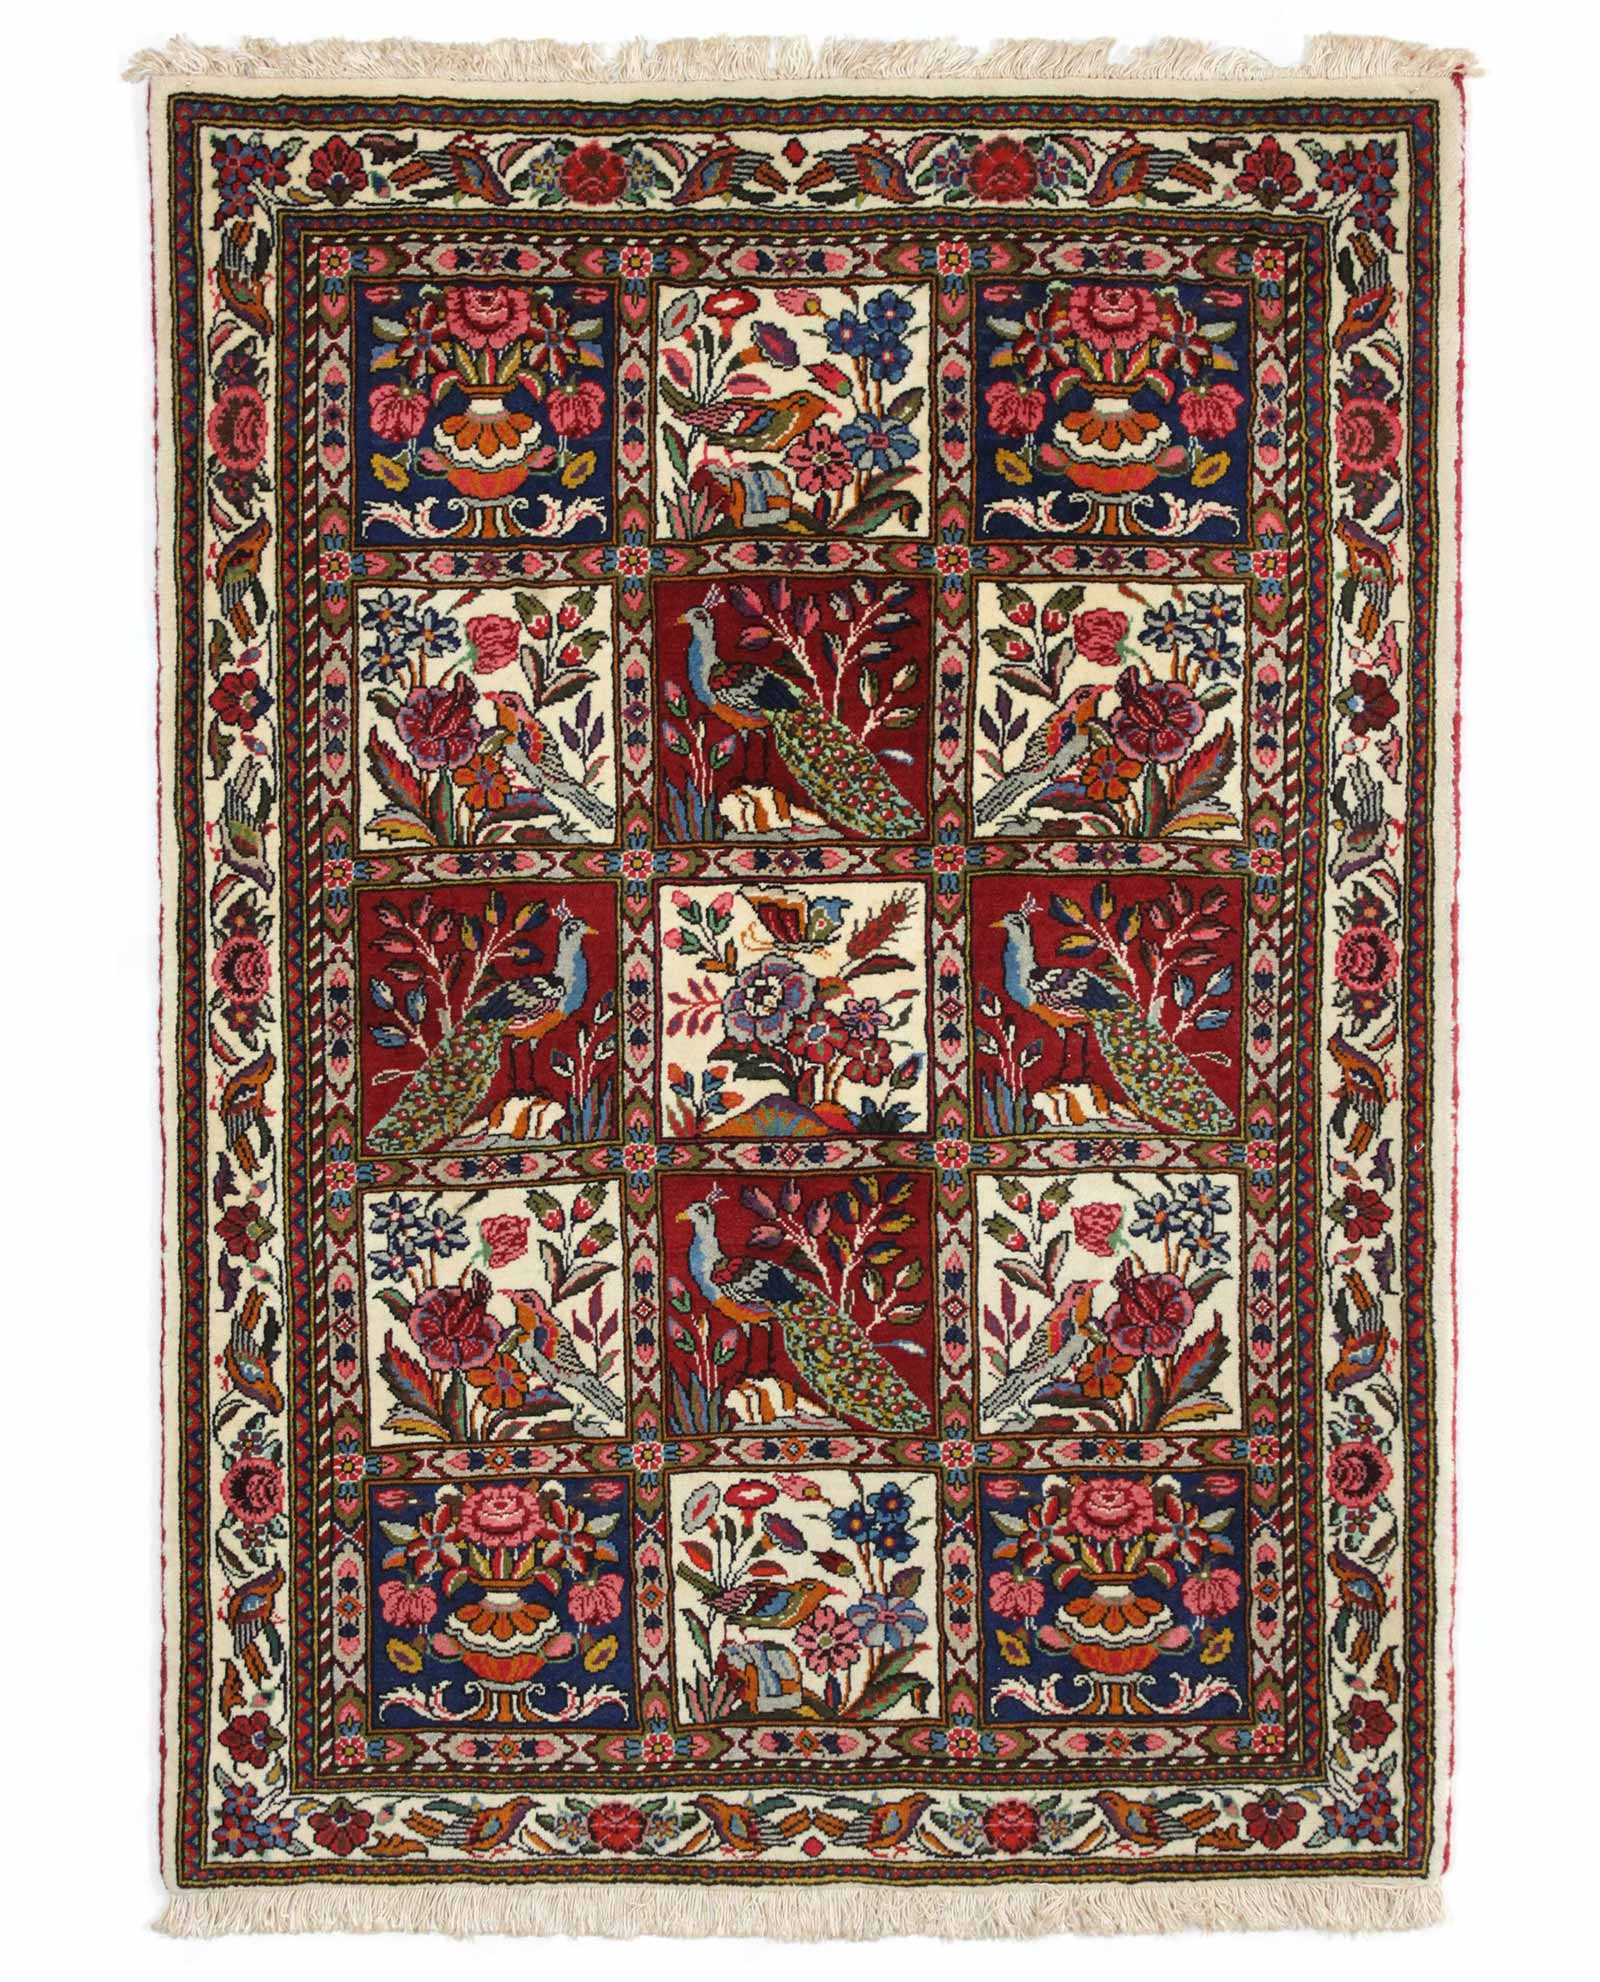 tapis persan bakhtiar 13824 iranian carpet. Black Bedroom Furniture Sets. Home Design Ideas